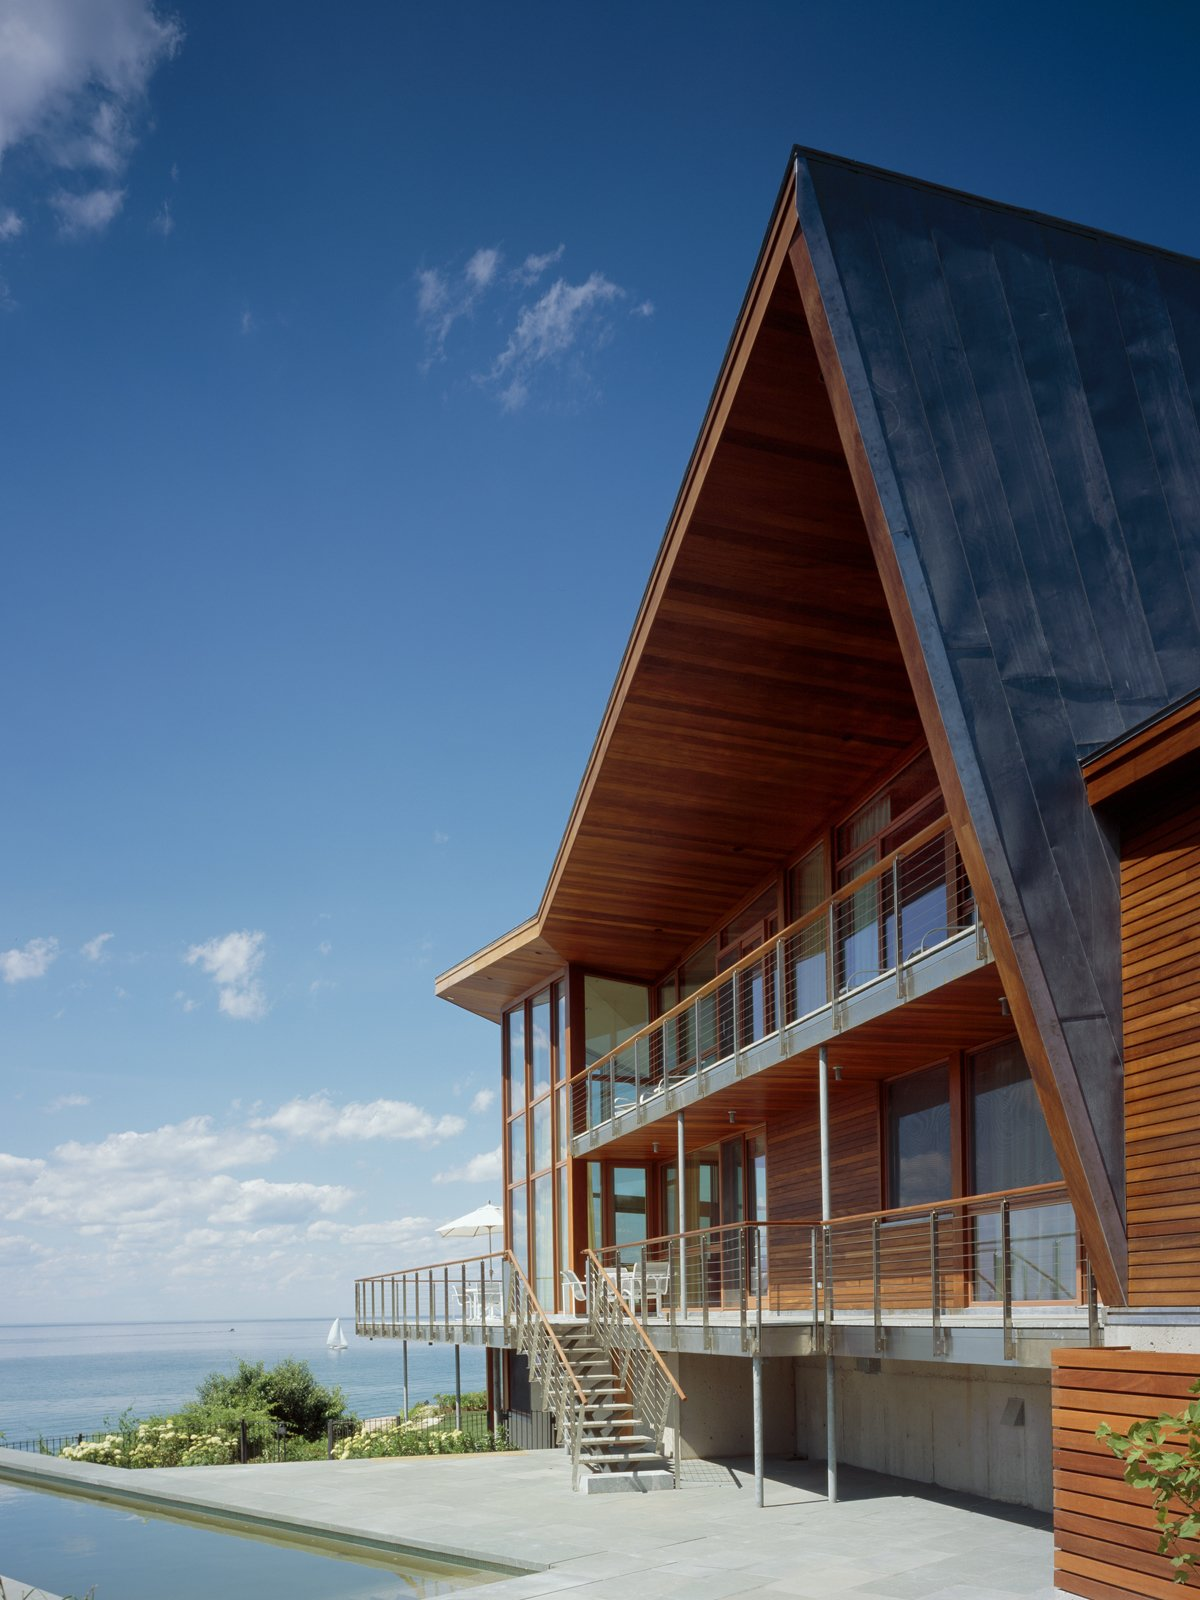 #JIBHouse #modern #structure #form #exterior #outside #outdoors #view #angles #window #landscape #naturallight #deck #staircase #angles #Glouchester #AtlanticOcean #2004 #CharlesRoseArchitects  JIB House by Charles Rose Architects